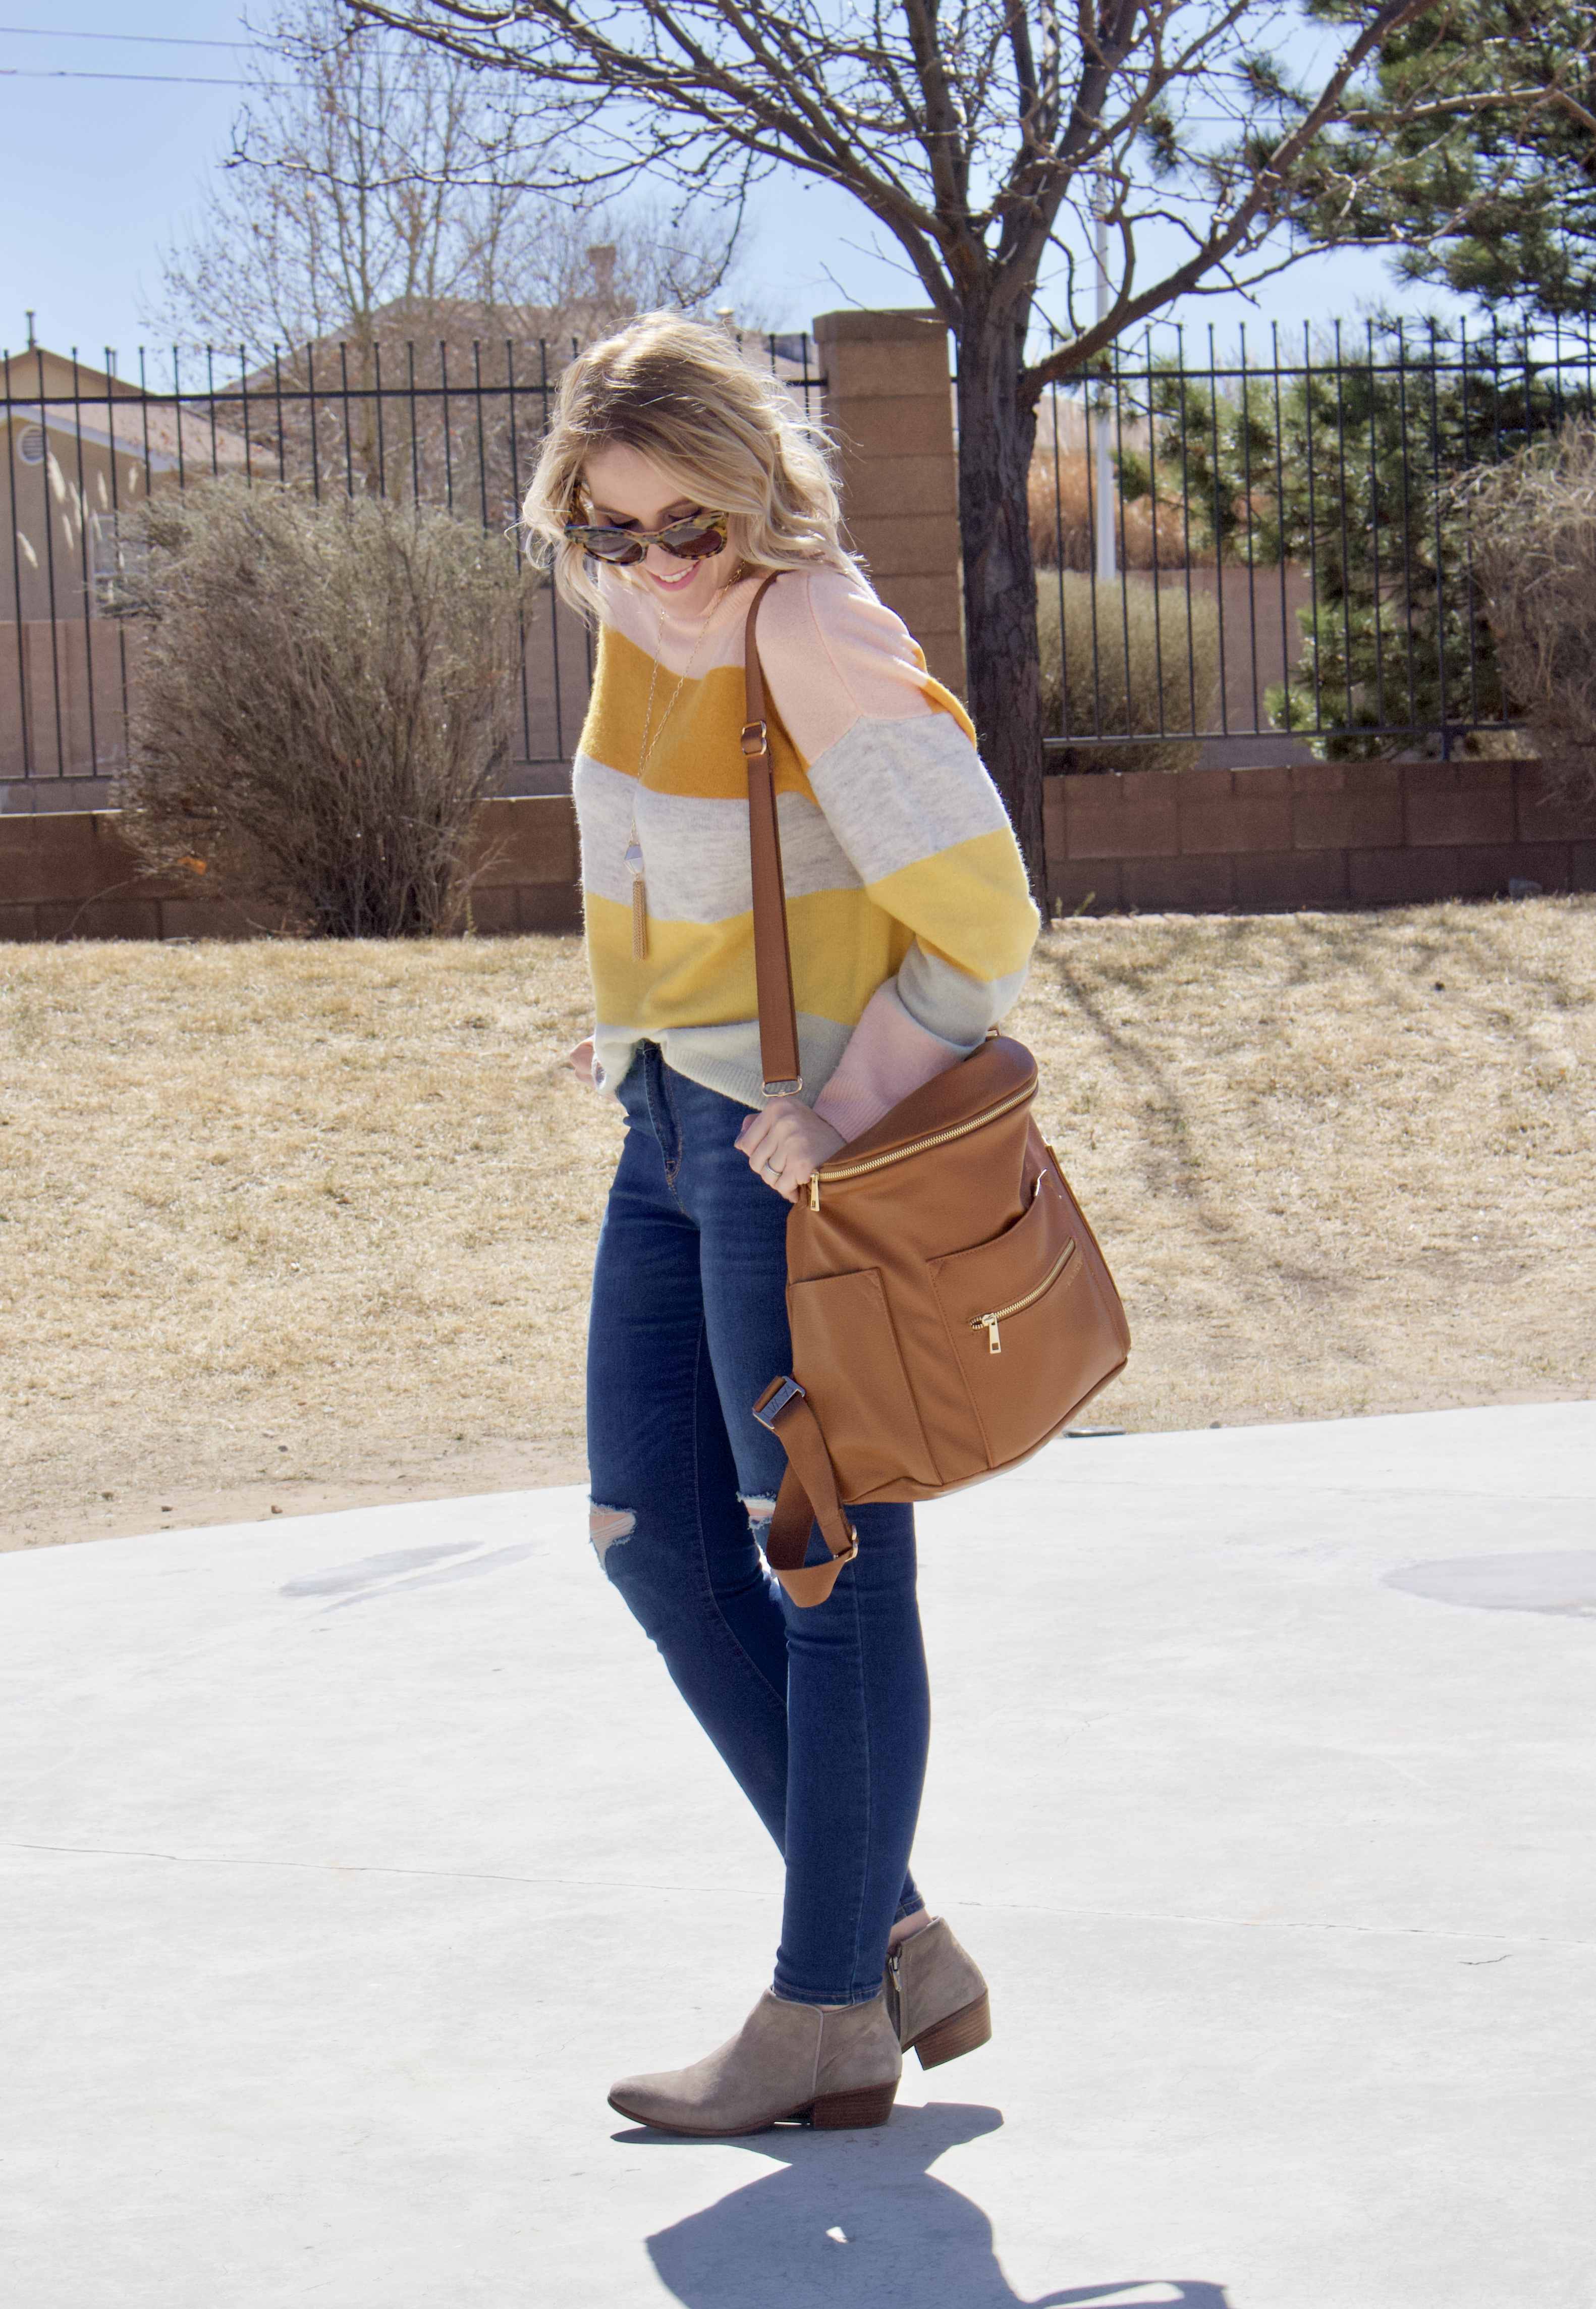 winter to spring transitional style #momstyle #fawndesign #oldnavystyle